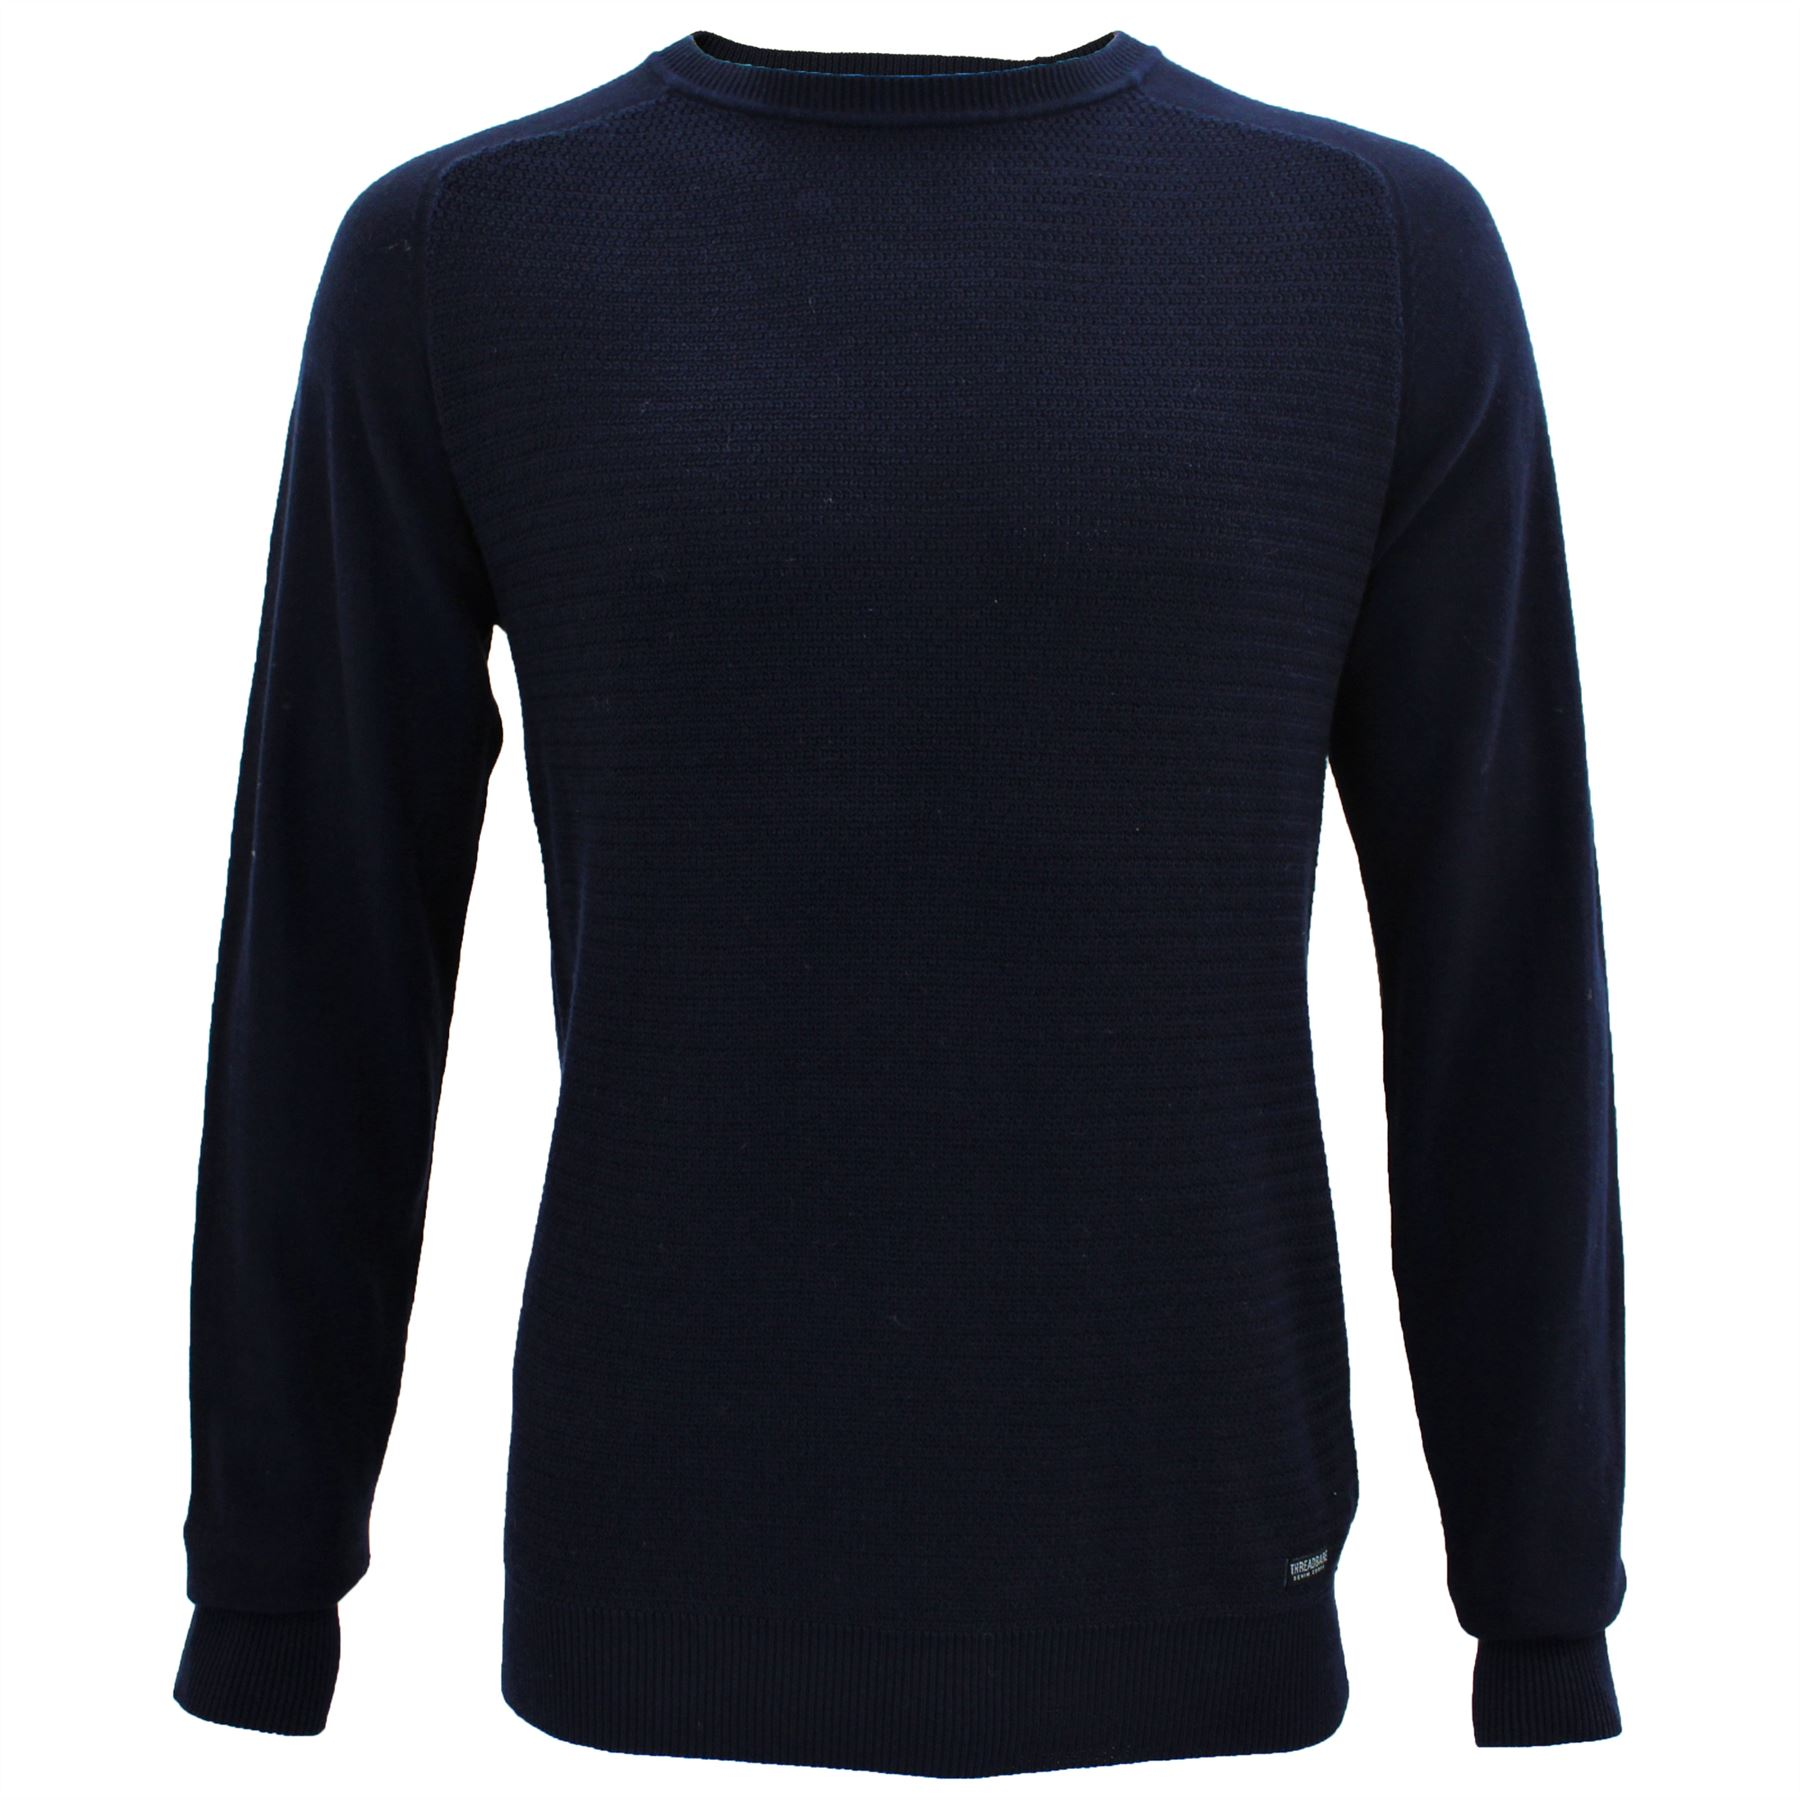 cddd14d4 Mens Thin Knit Textured Soft Feel Cotton Crew Neck Jumper By ...